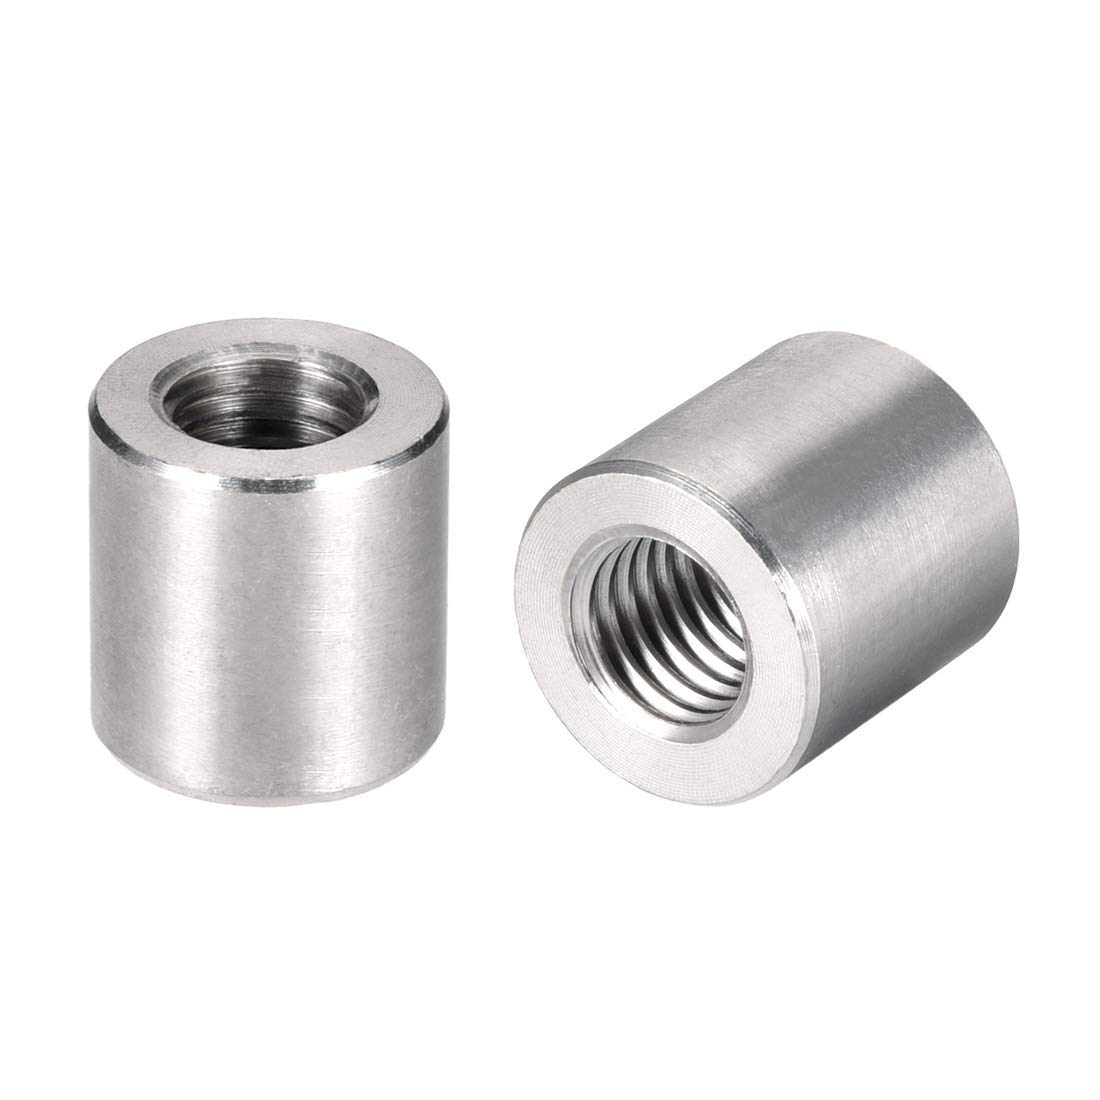 Round Connector Nuts M12x20mm Height Sleeve Bar Bar Nut 304 Stainless Steel Pack of 10